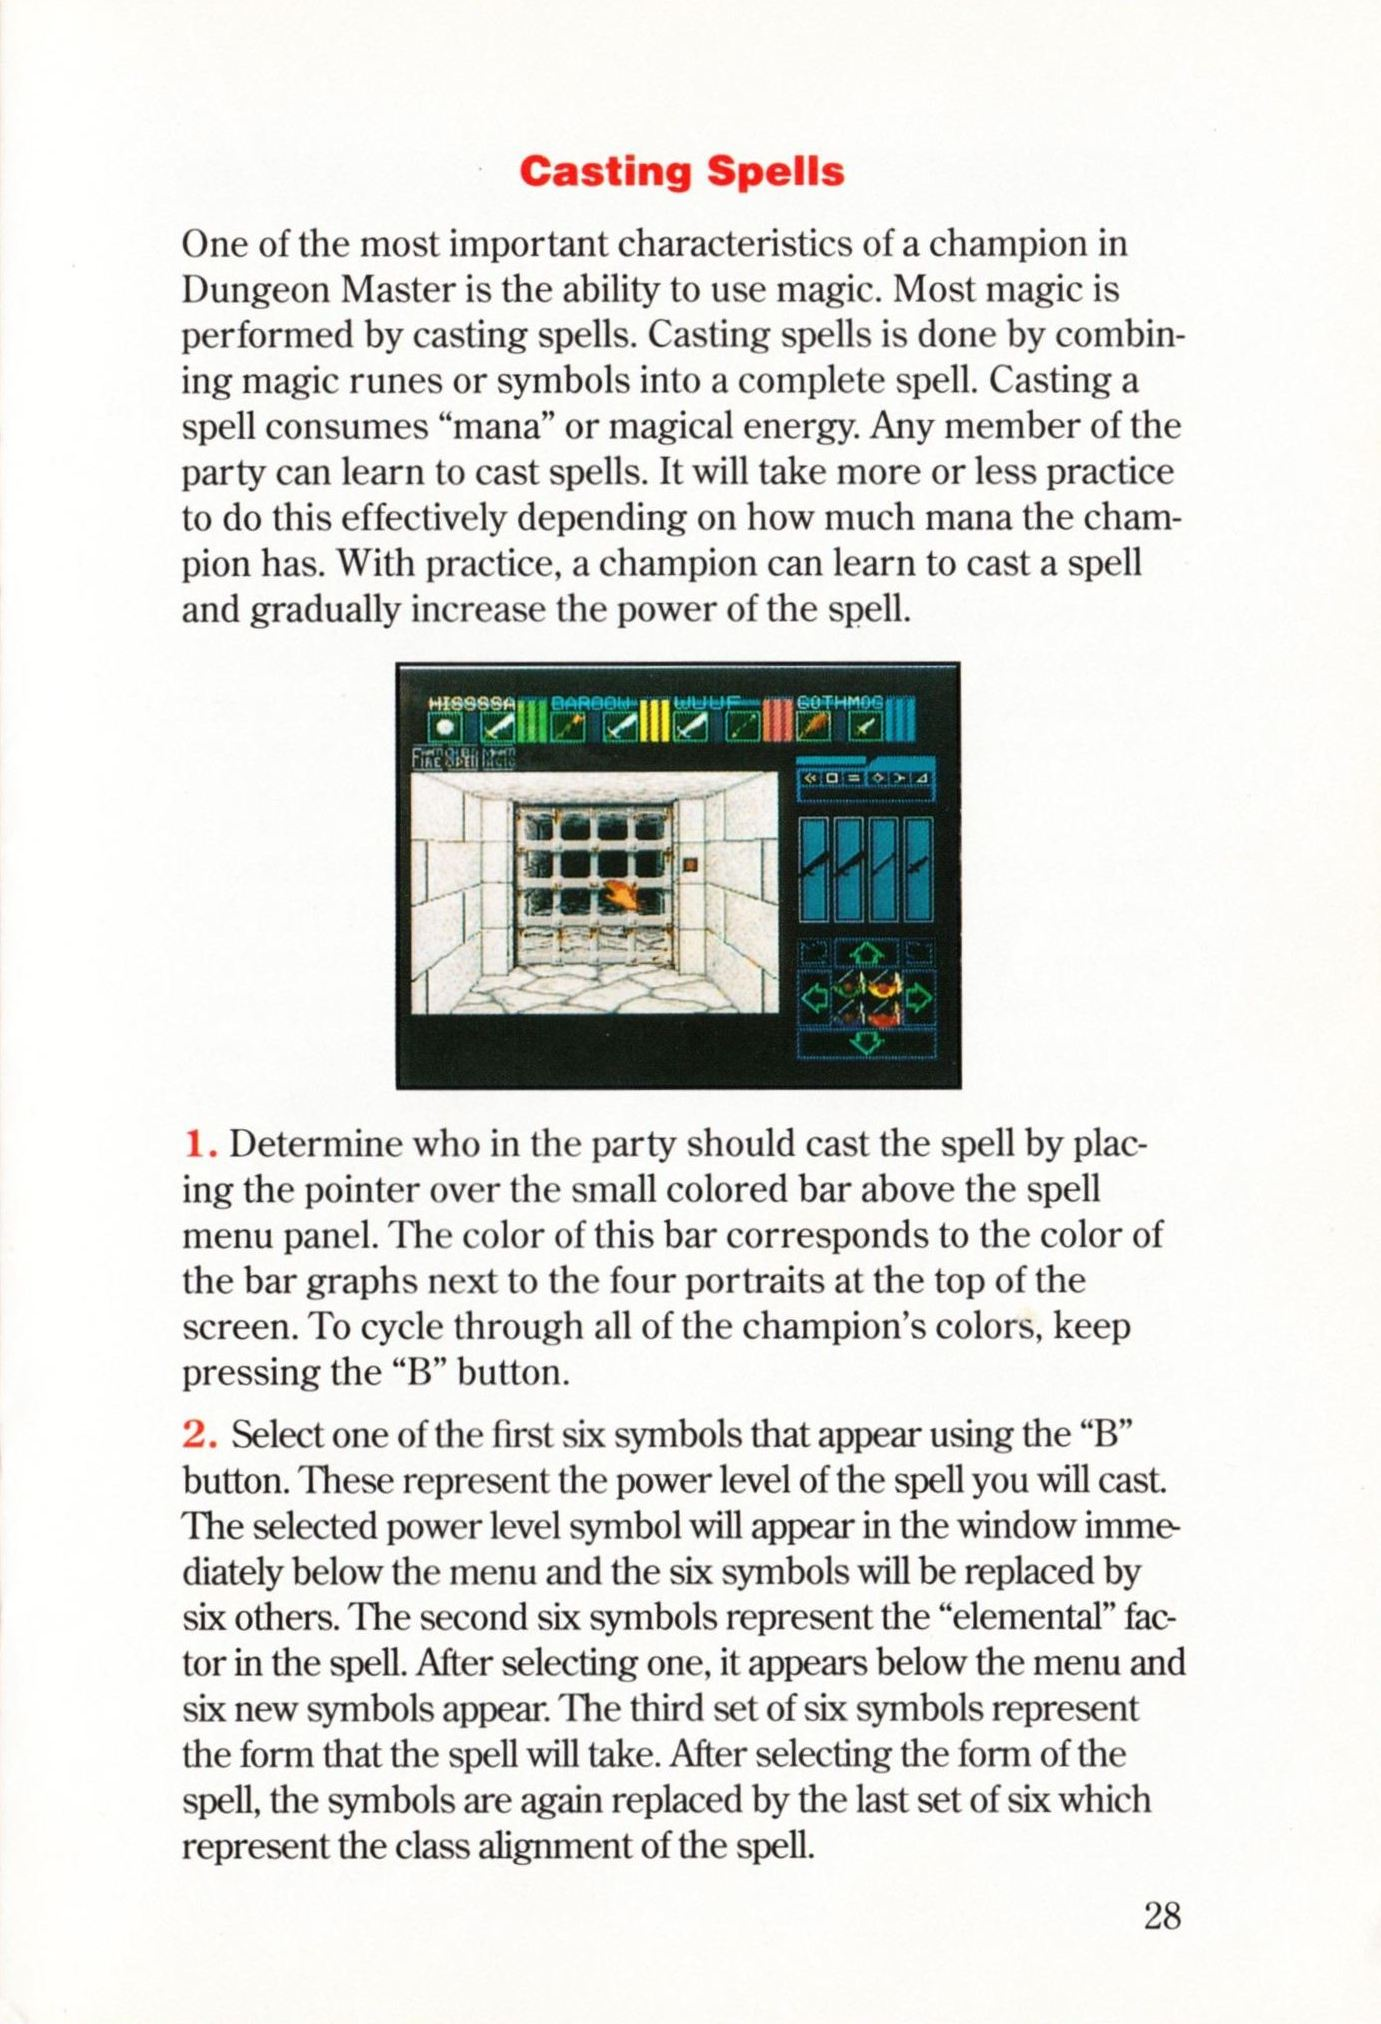 Game - Dungeon Master - US - Super NES - Manual - Page 031 - Scan